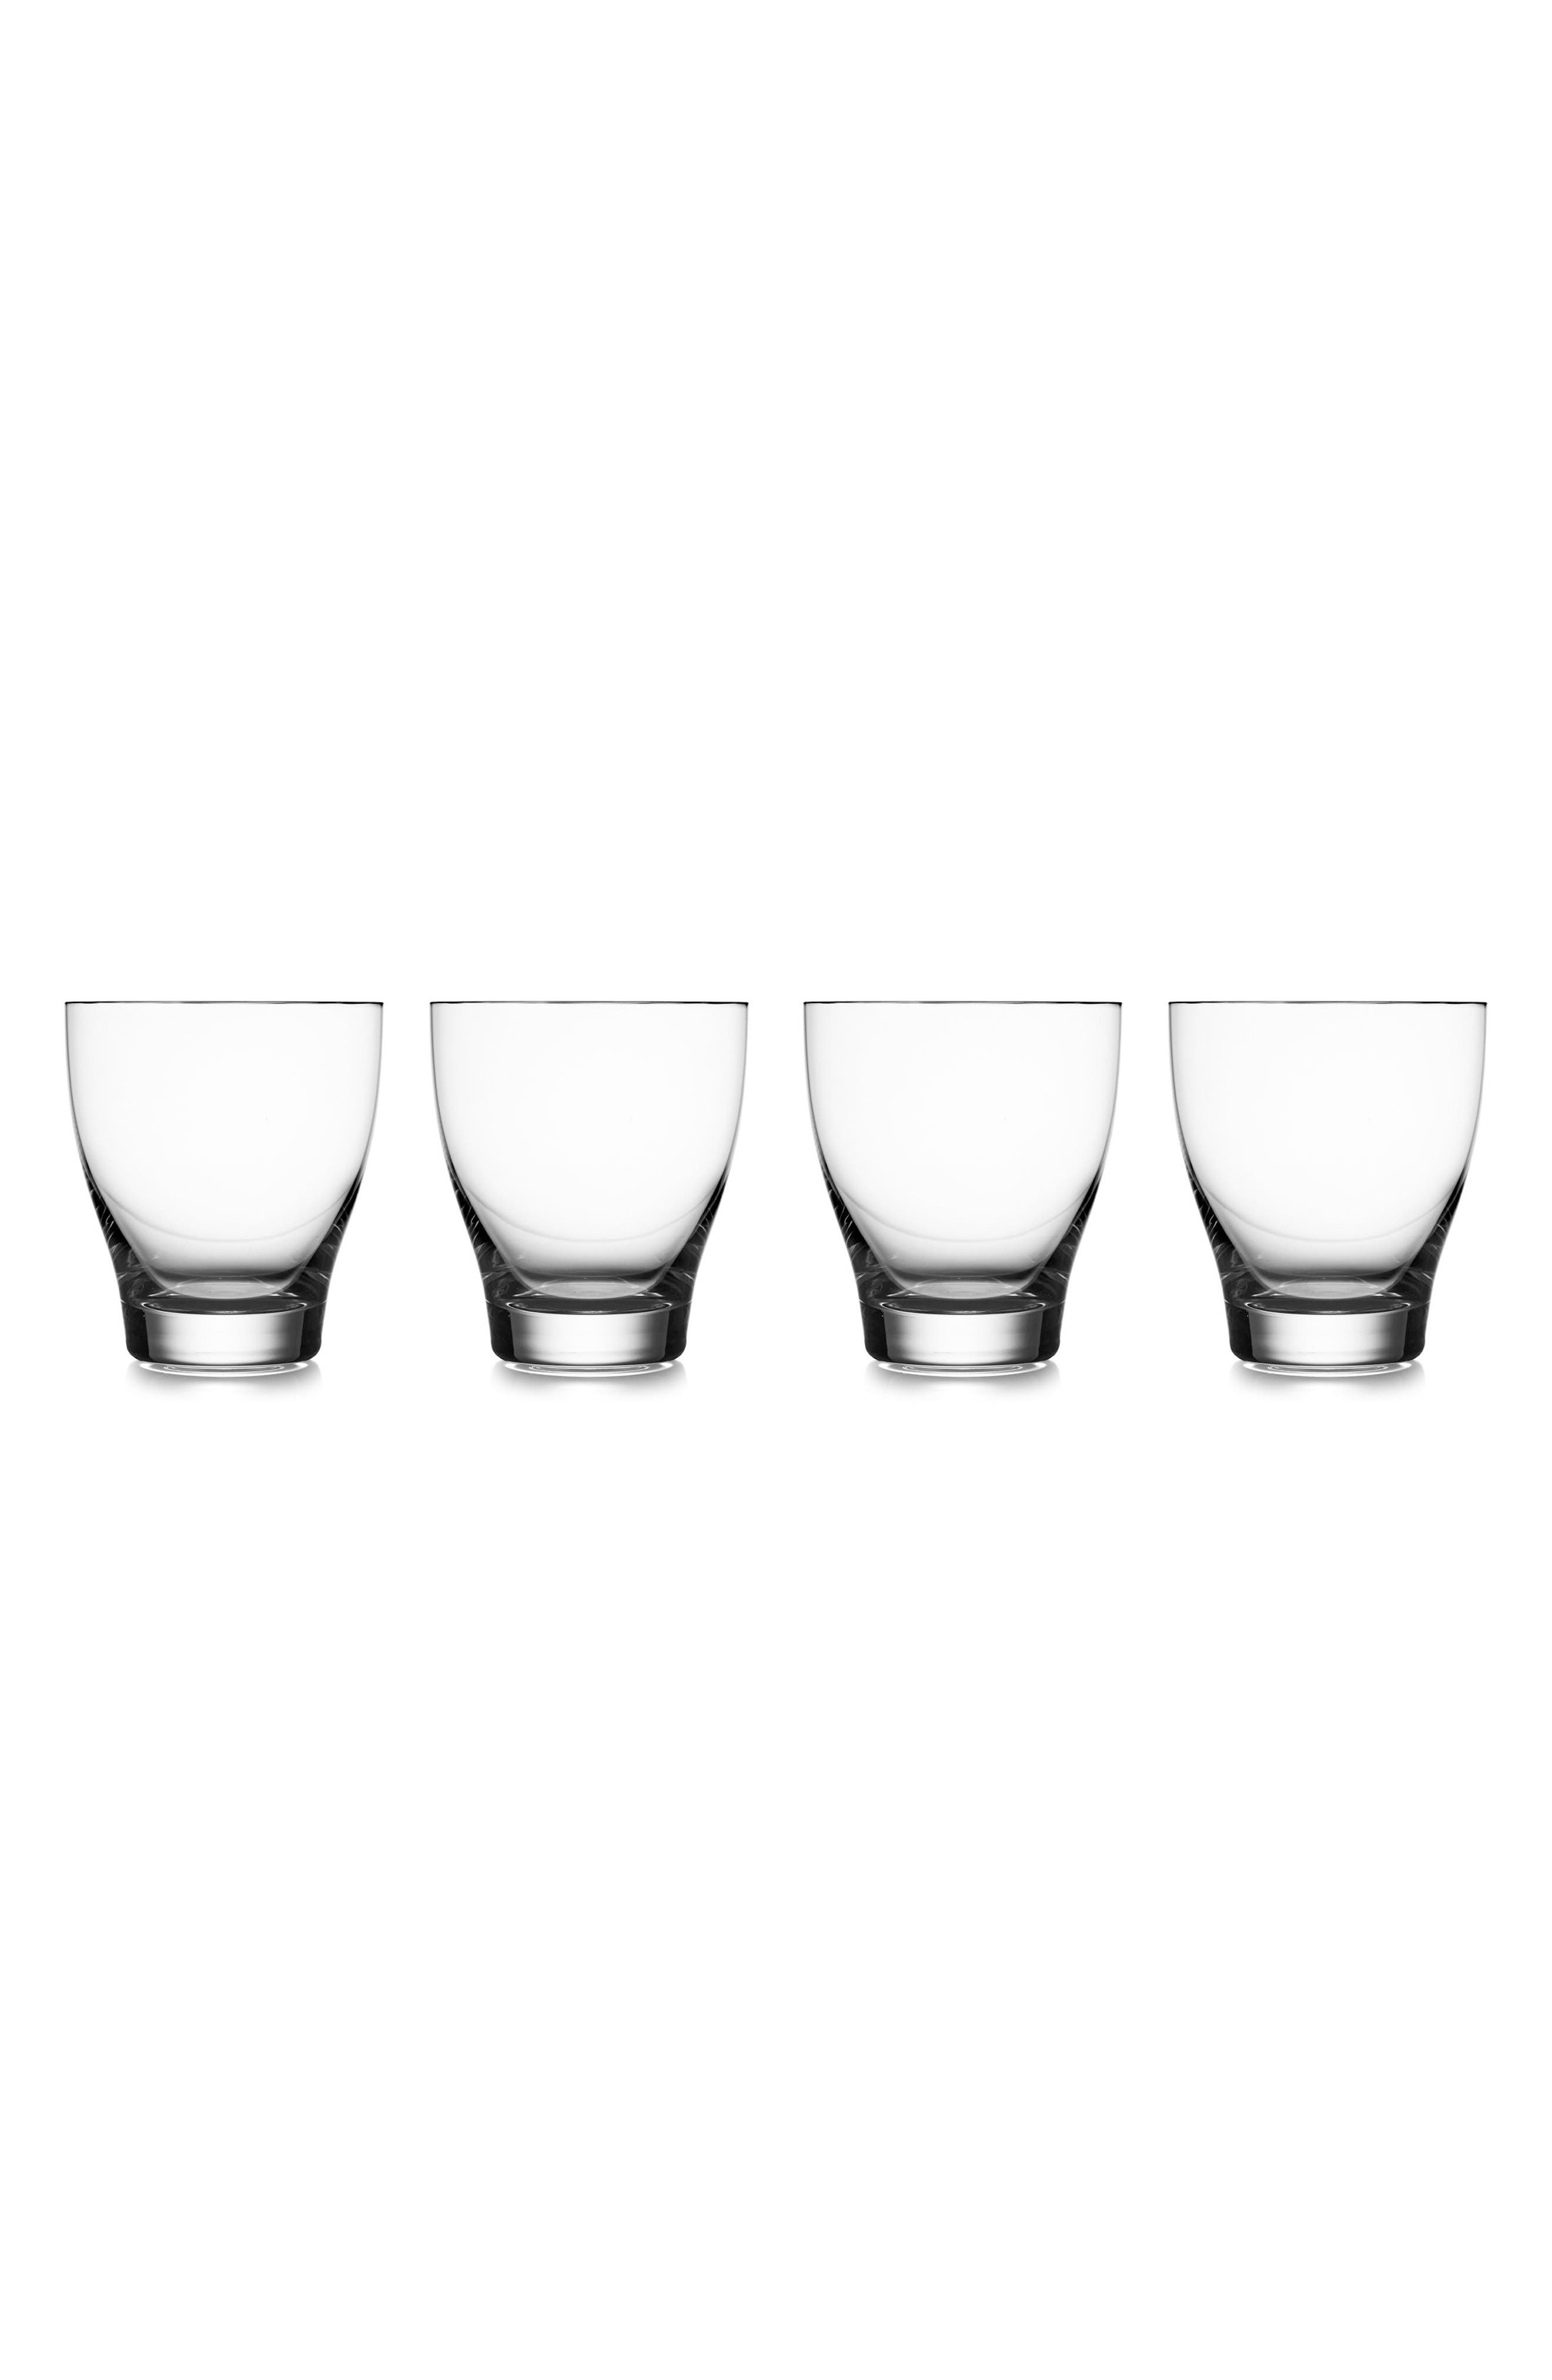 Vie Set of 4 Double Old Fashioned Glasses,                         Main,                         color, Clear